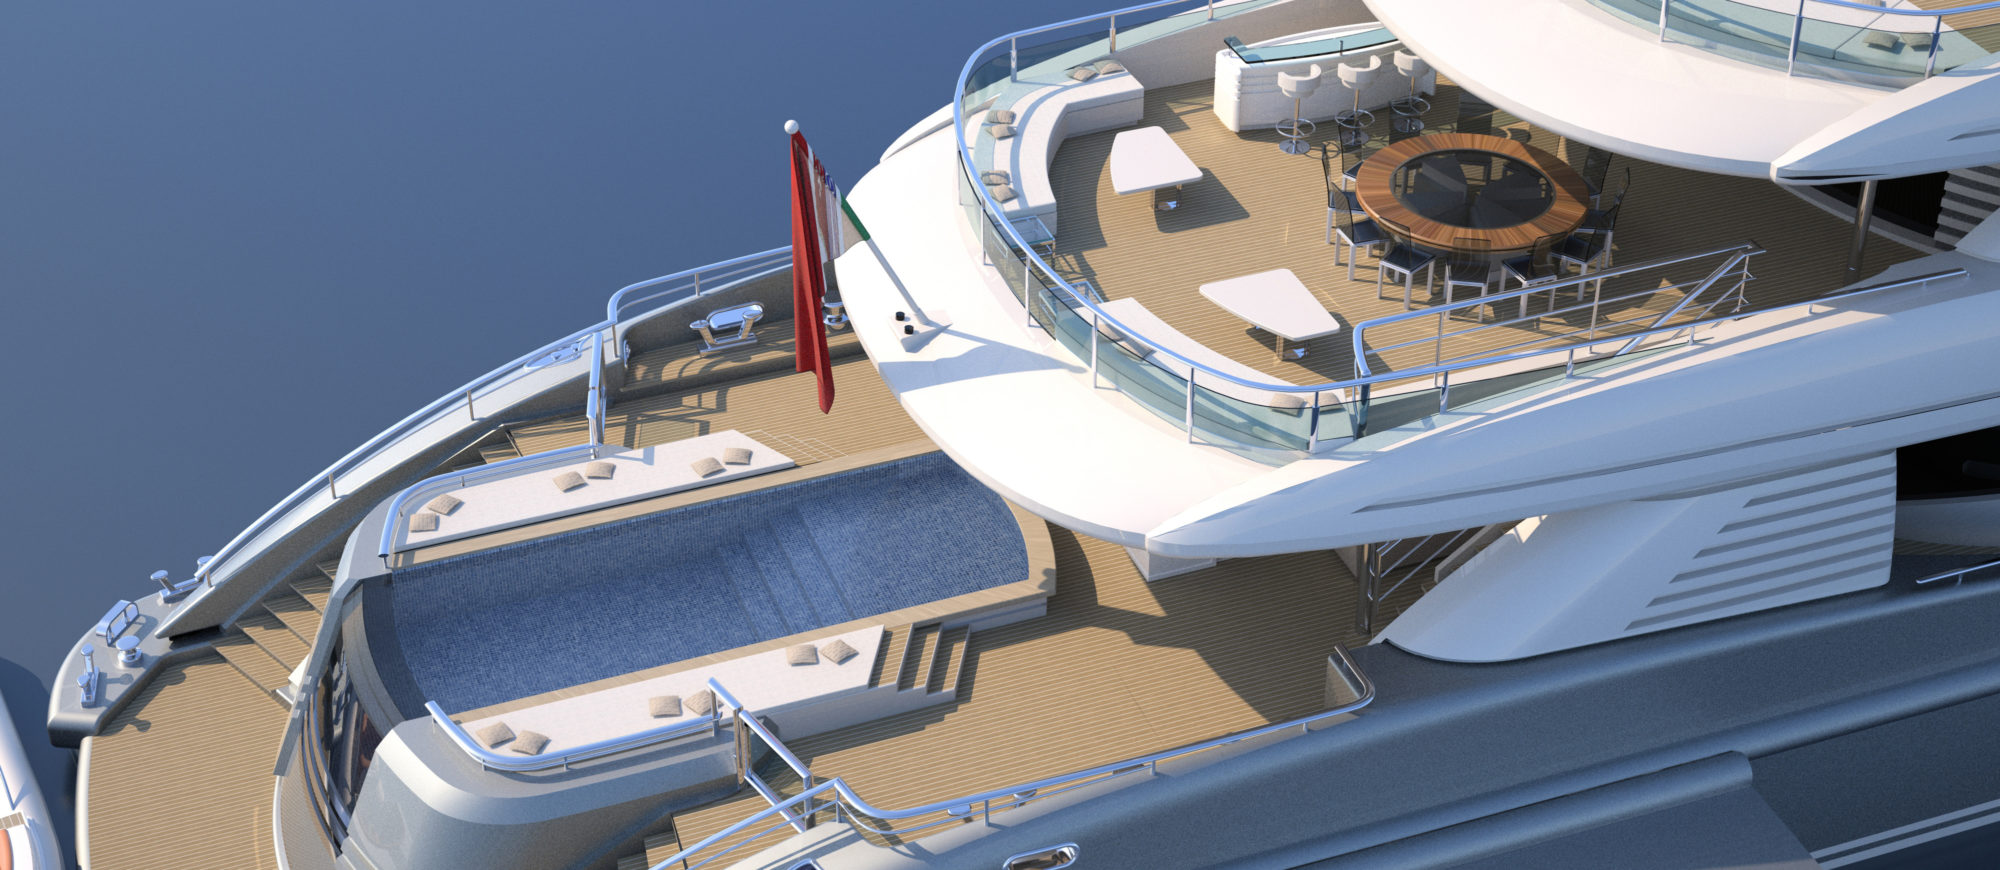 Conrad C233 Superyacht Concept Vallicelli Visualisation Aft Decks 1